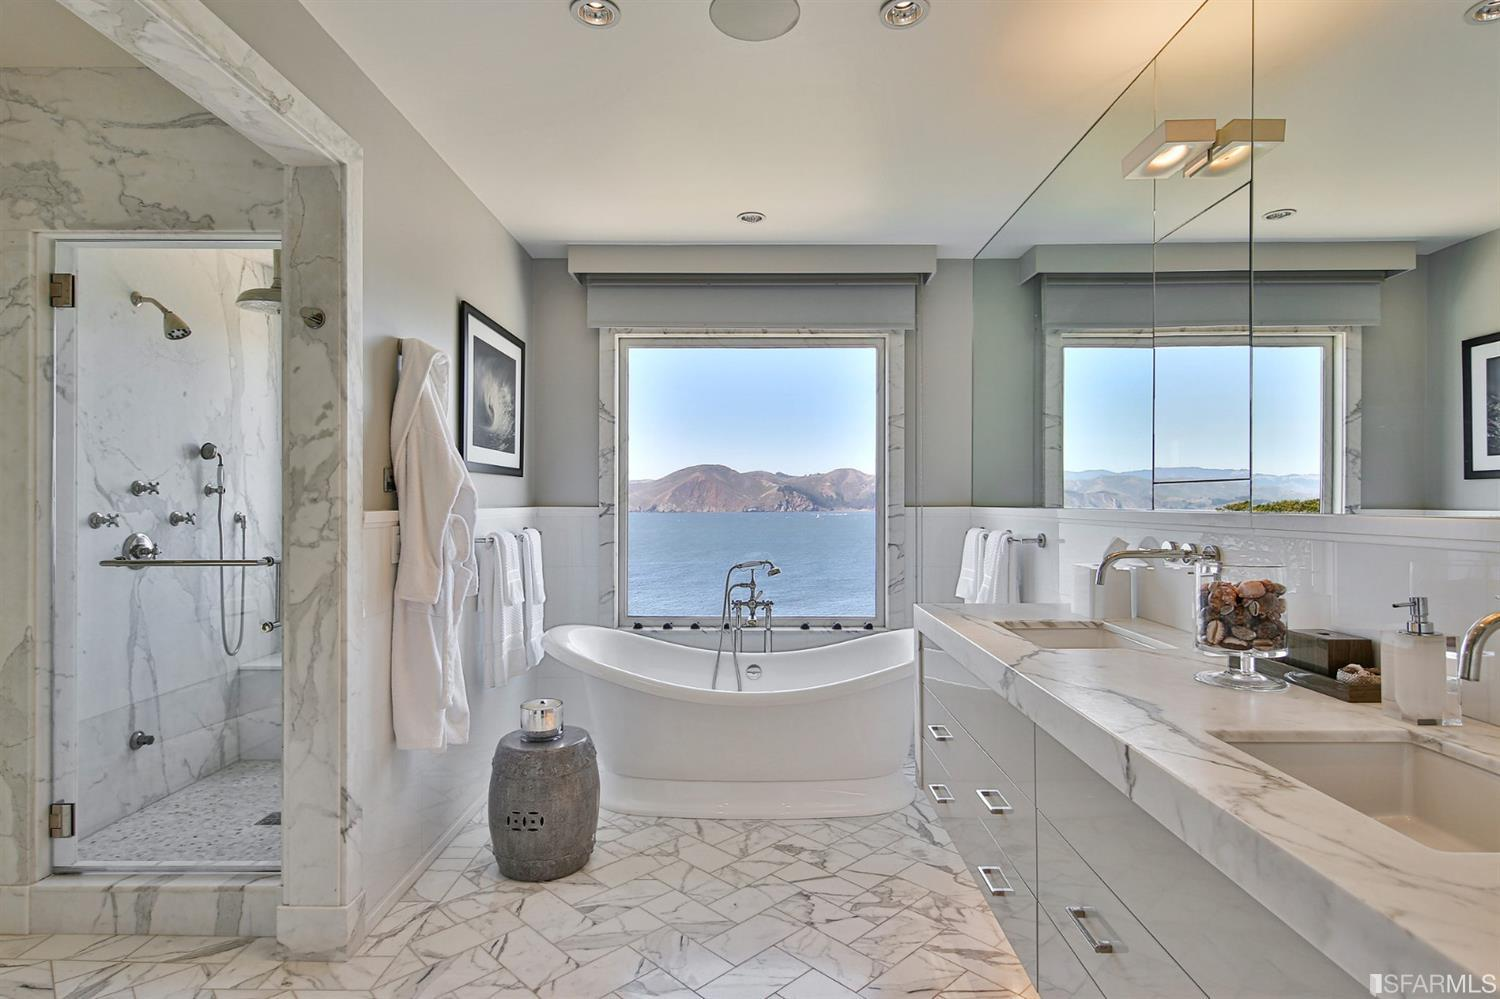 Luxurious Master bath with large soaking tub, steam shower, double vanity and those iconic views.